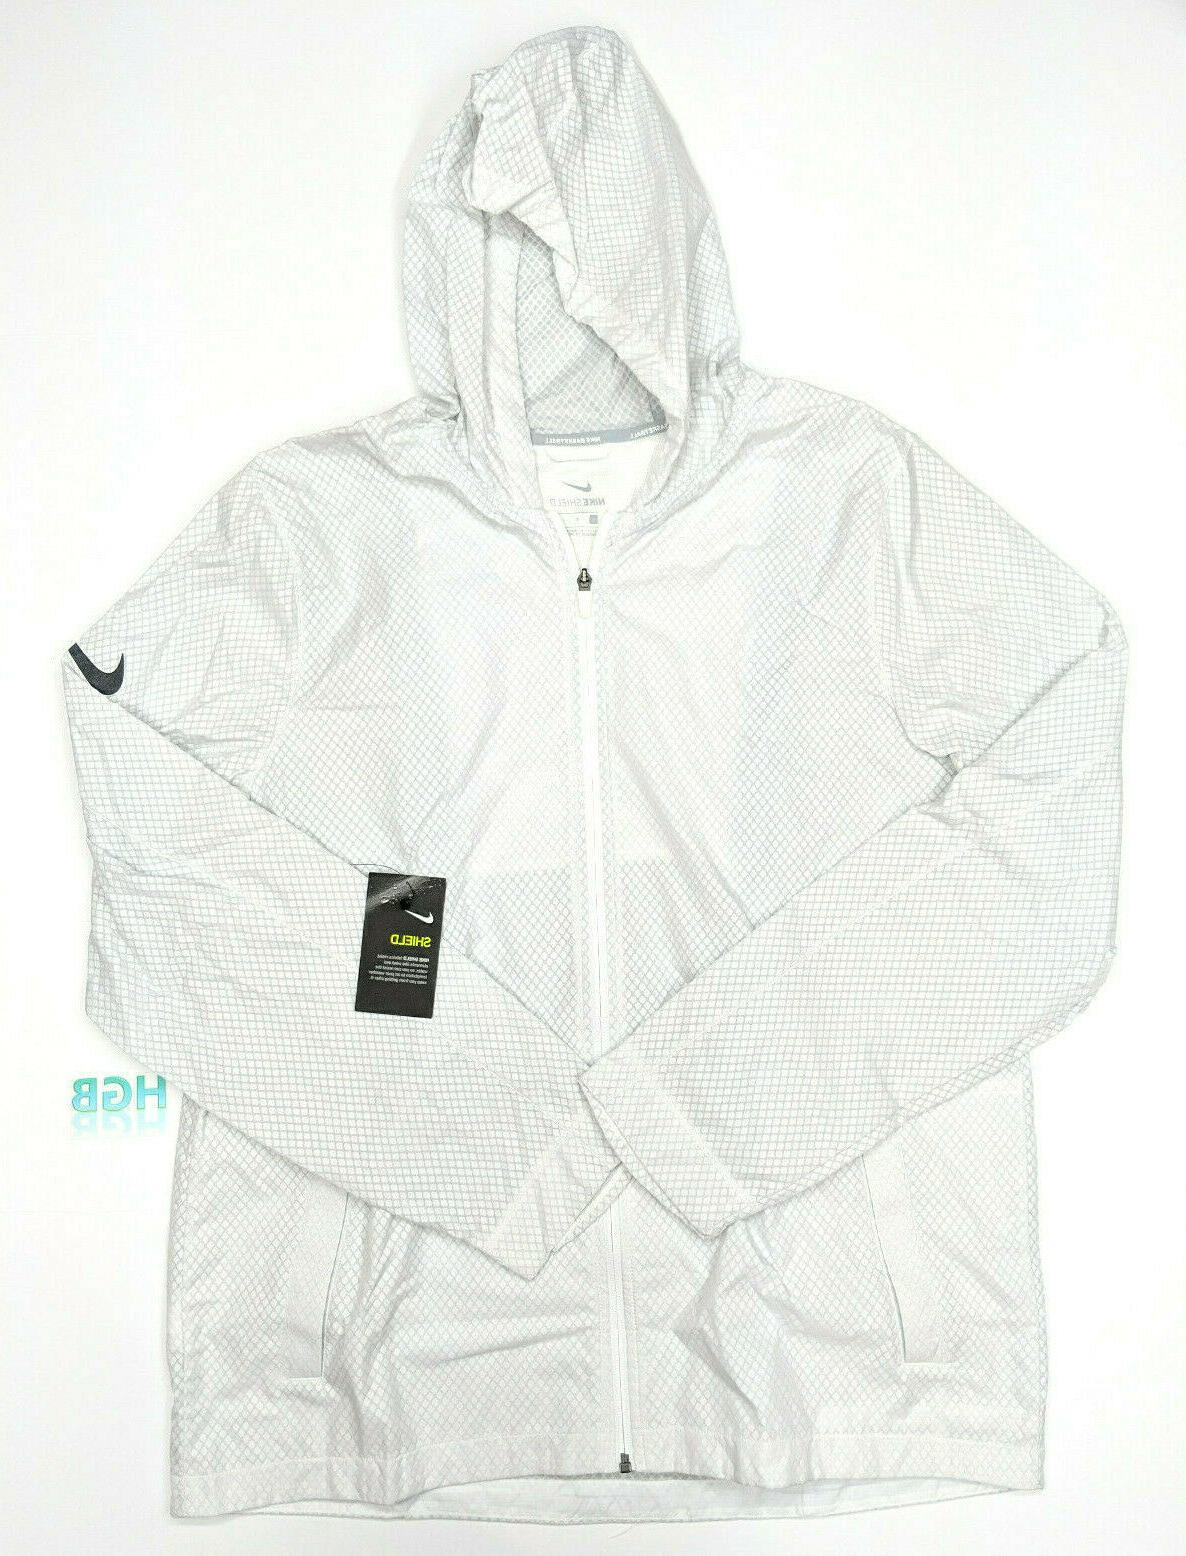 shield hooded jacket mens full zip reflective